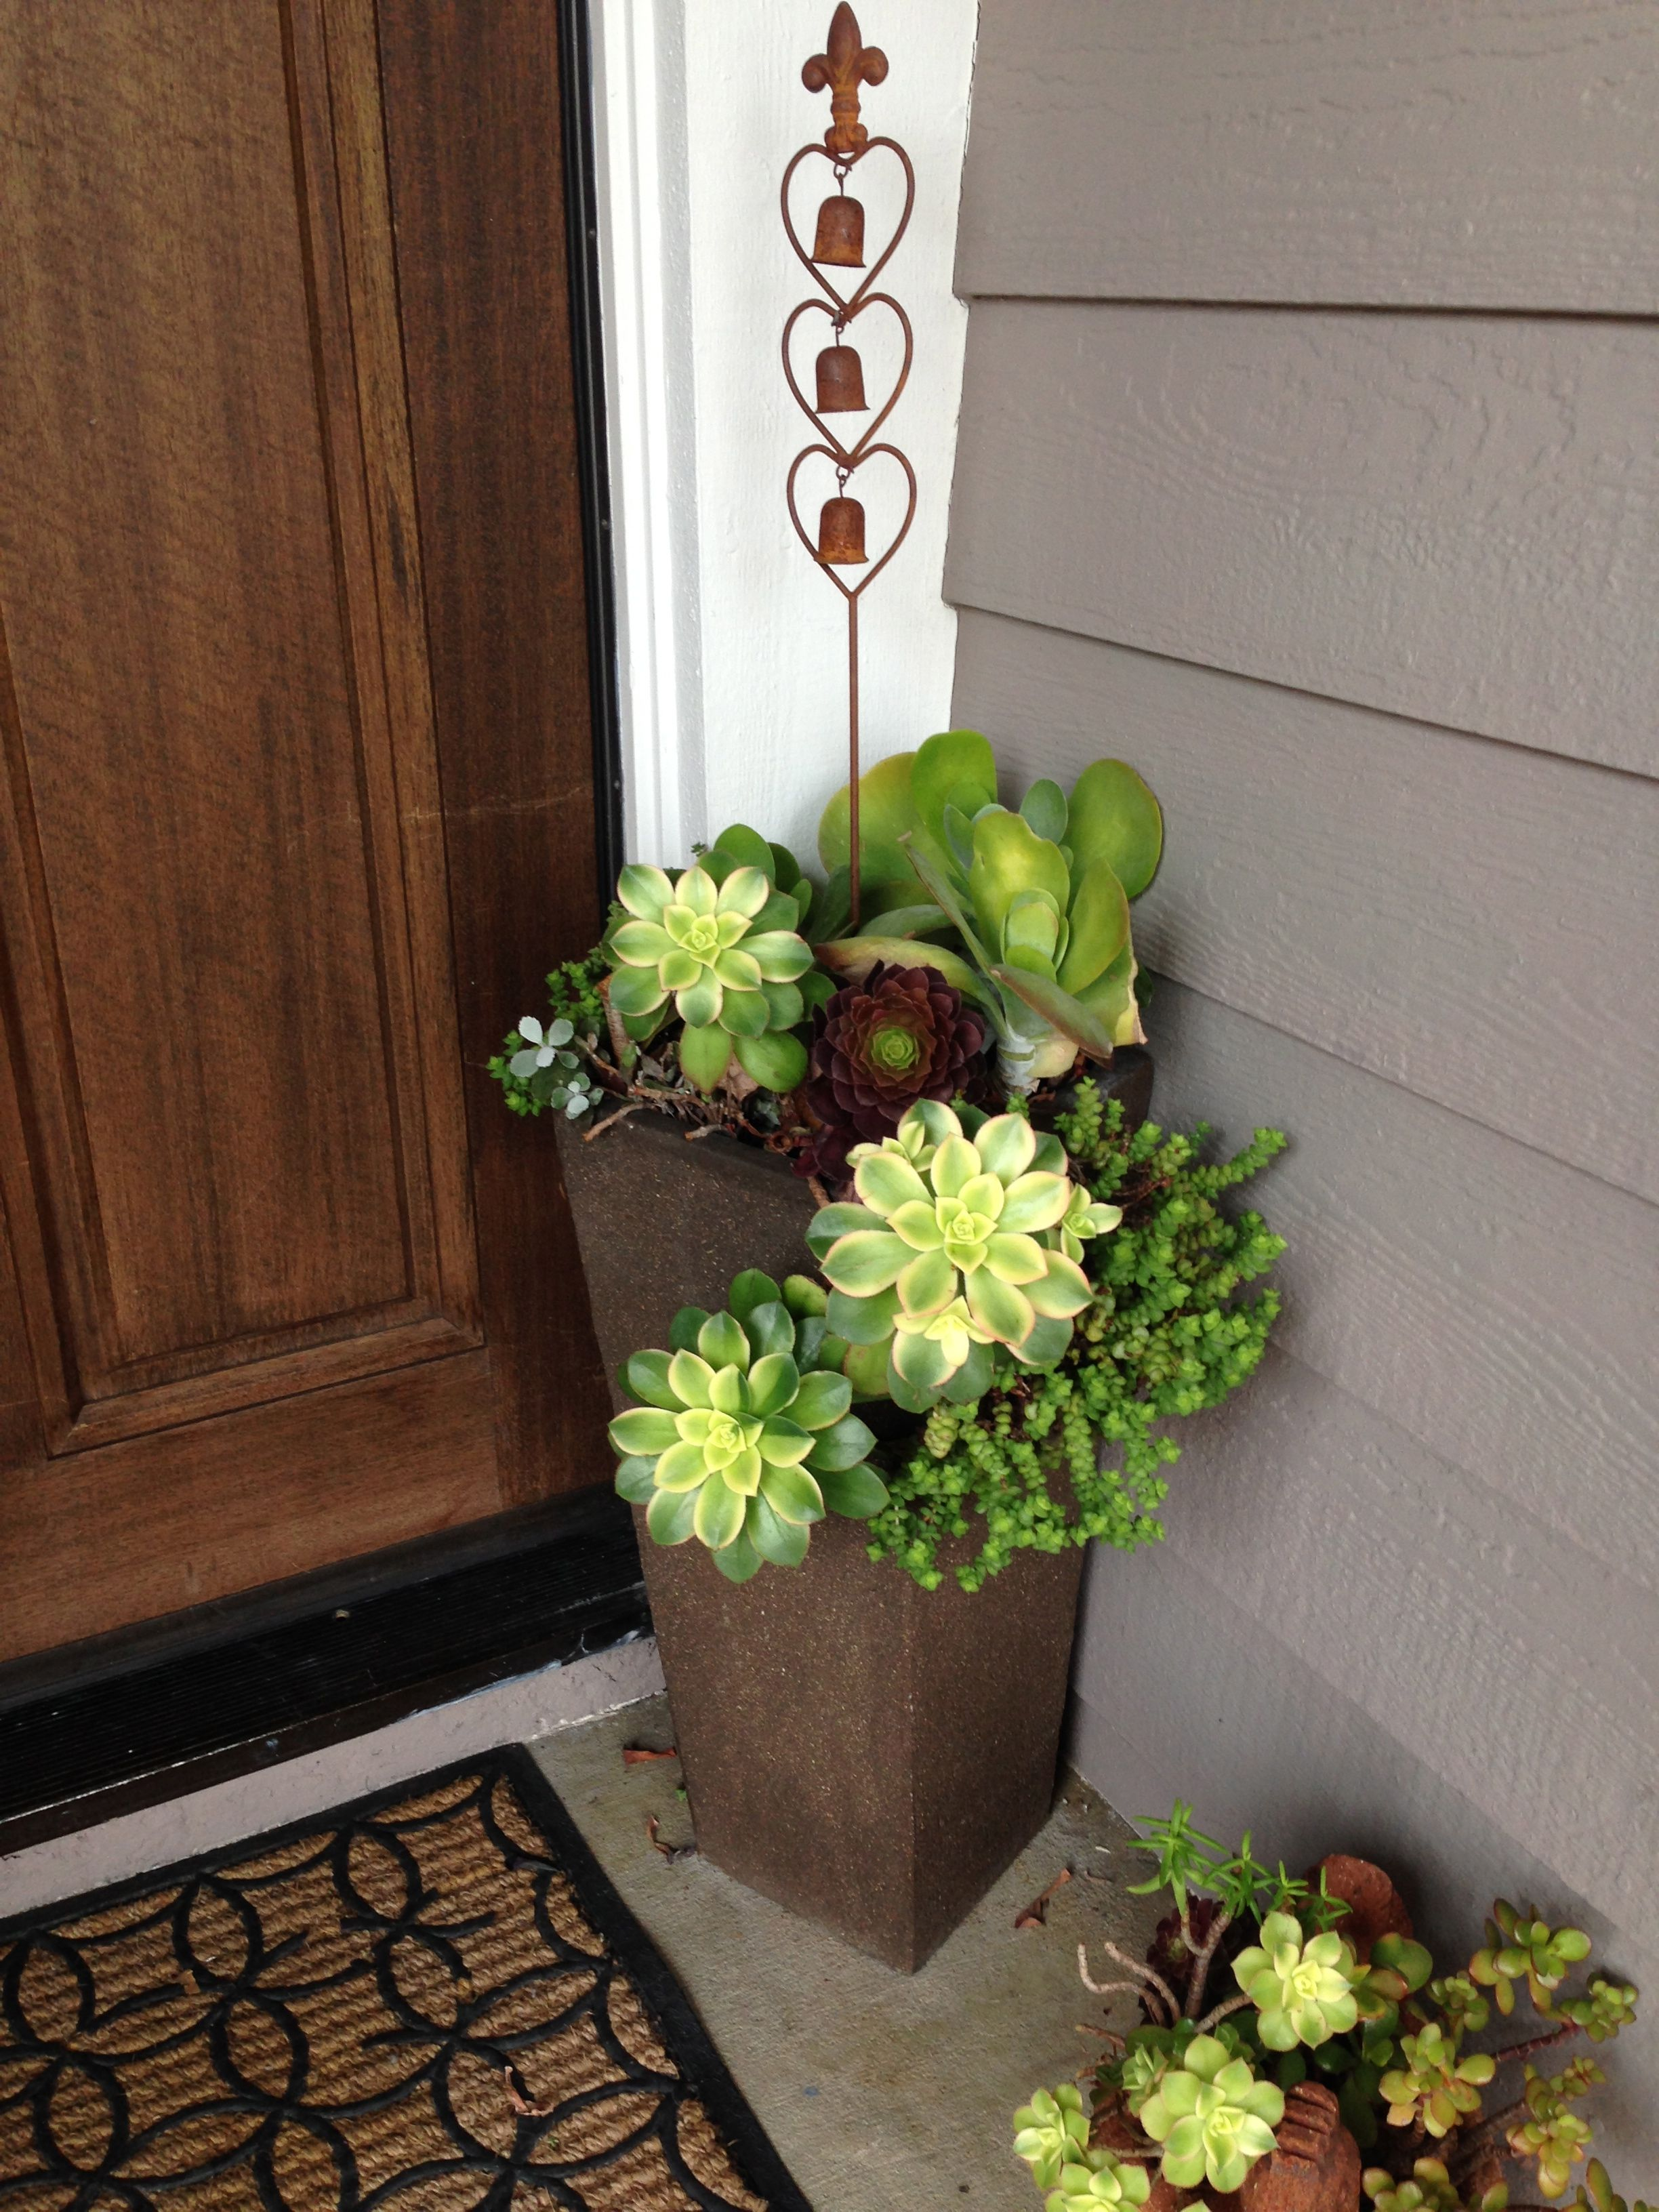 Welcome Your Guests To Home No Matter The Season With These Fun Front Door Flower Pot Ideas Just Like An Outfit Is Never Truly Complete Without